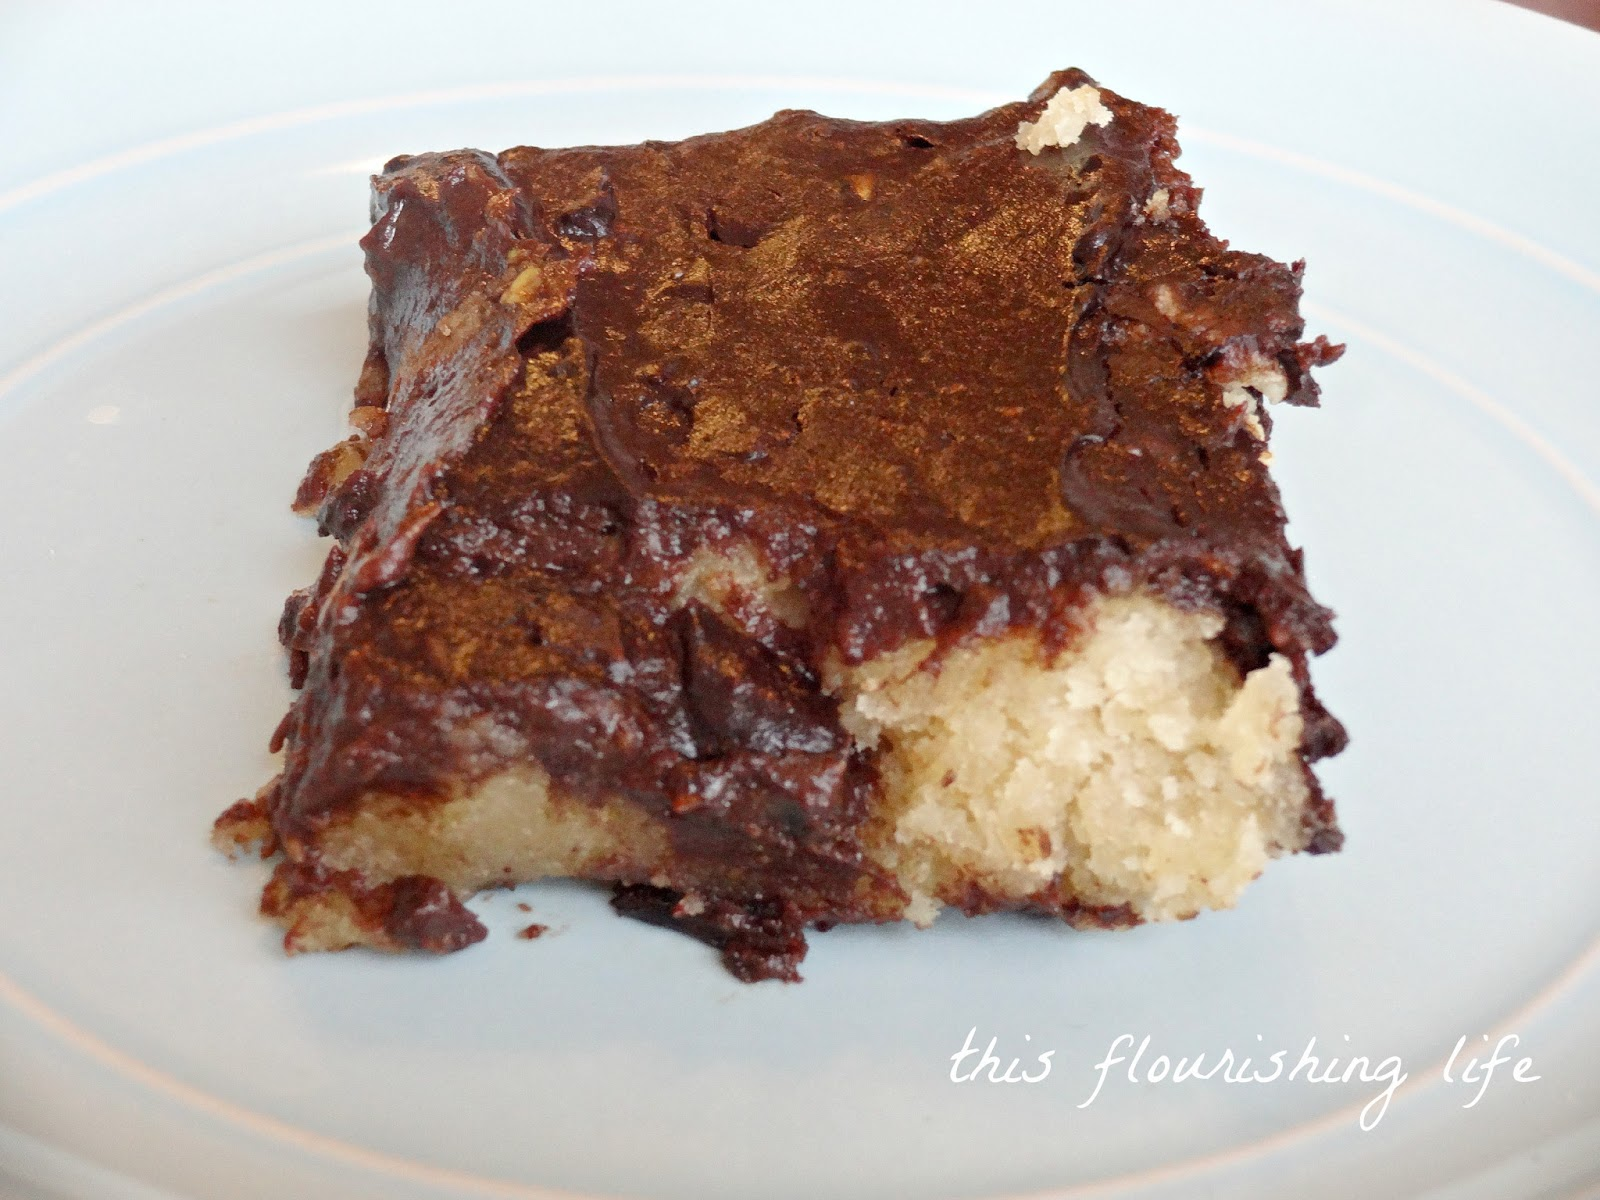 ... Chocolate Pudding recipe and my own Chocolate Chip Cookie Bars recipe